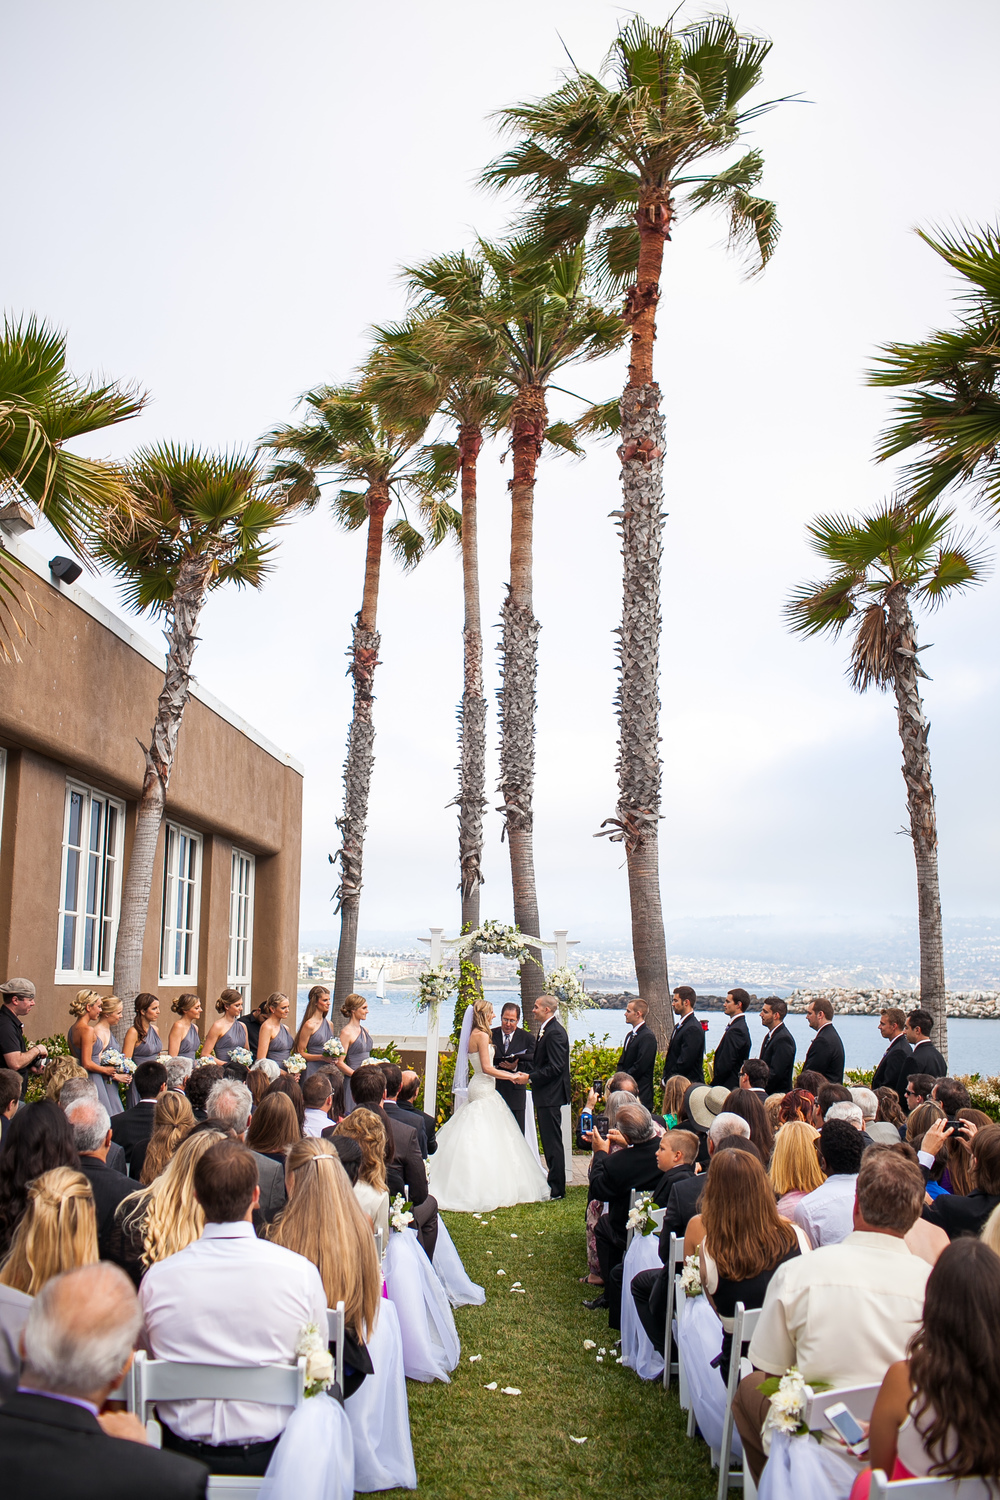 Wedding Ceremony // The Overwhelmed Bride Wedding Blog + Southern California Wedding Planner